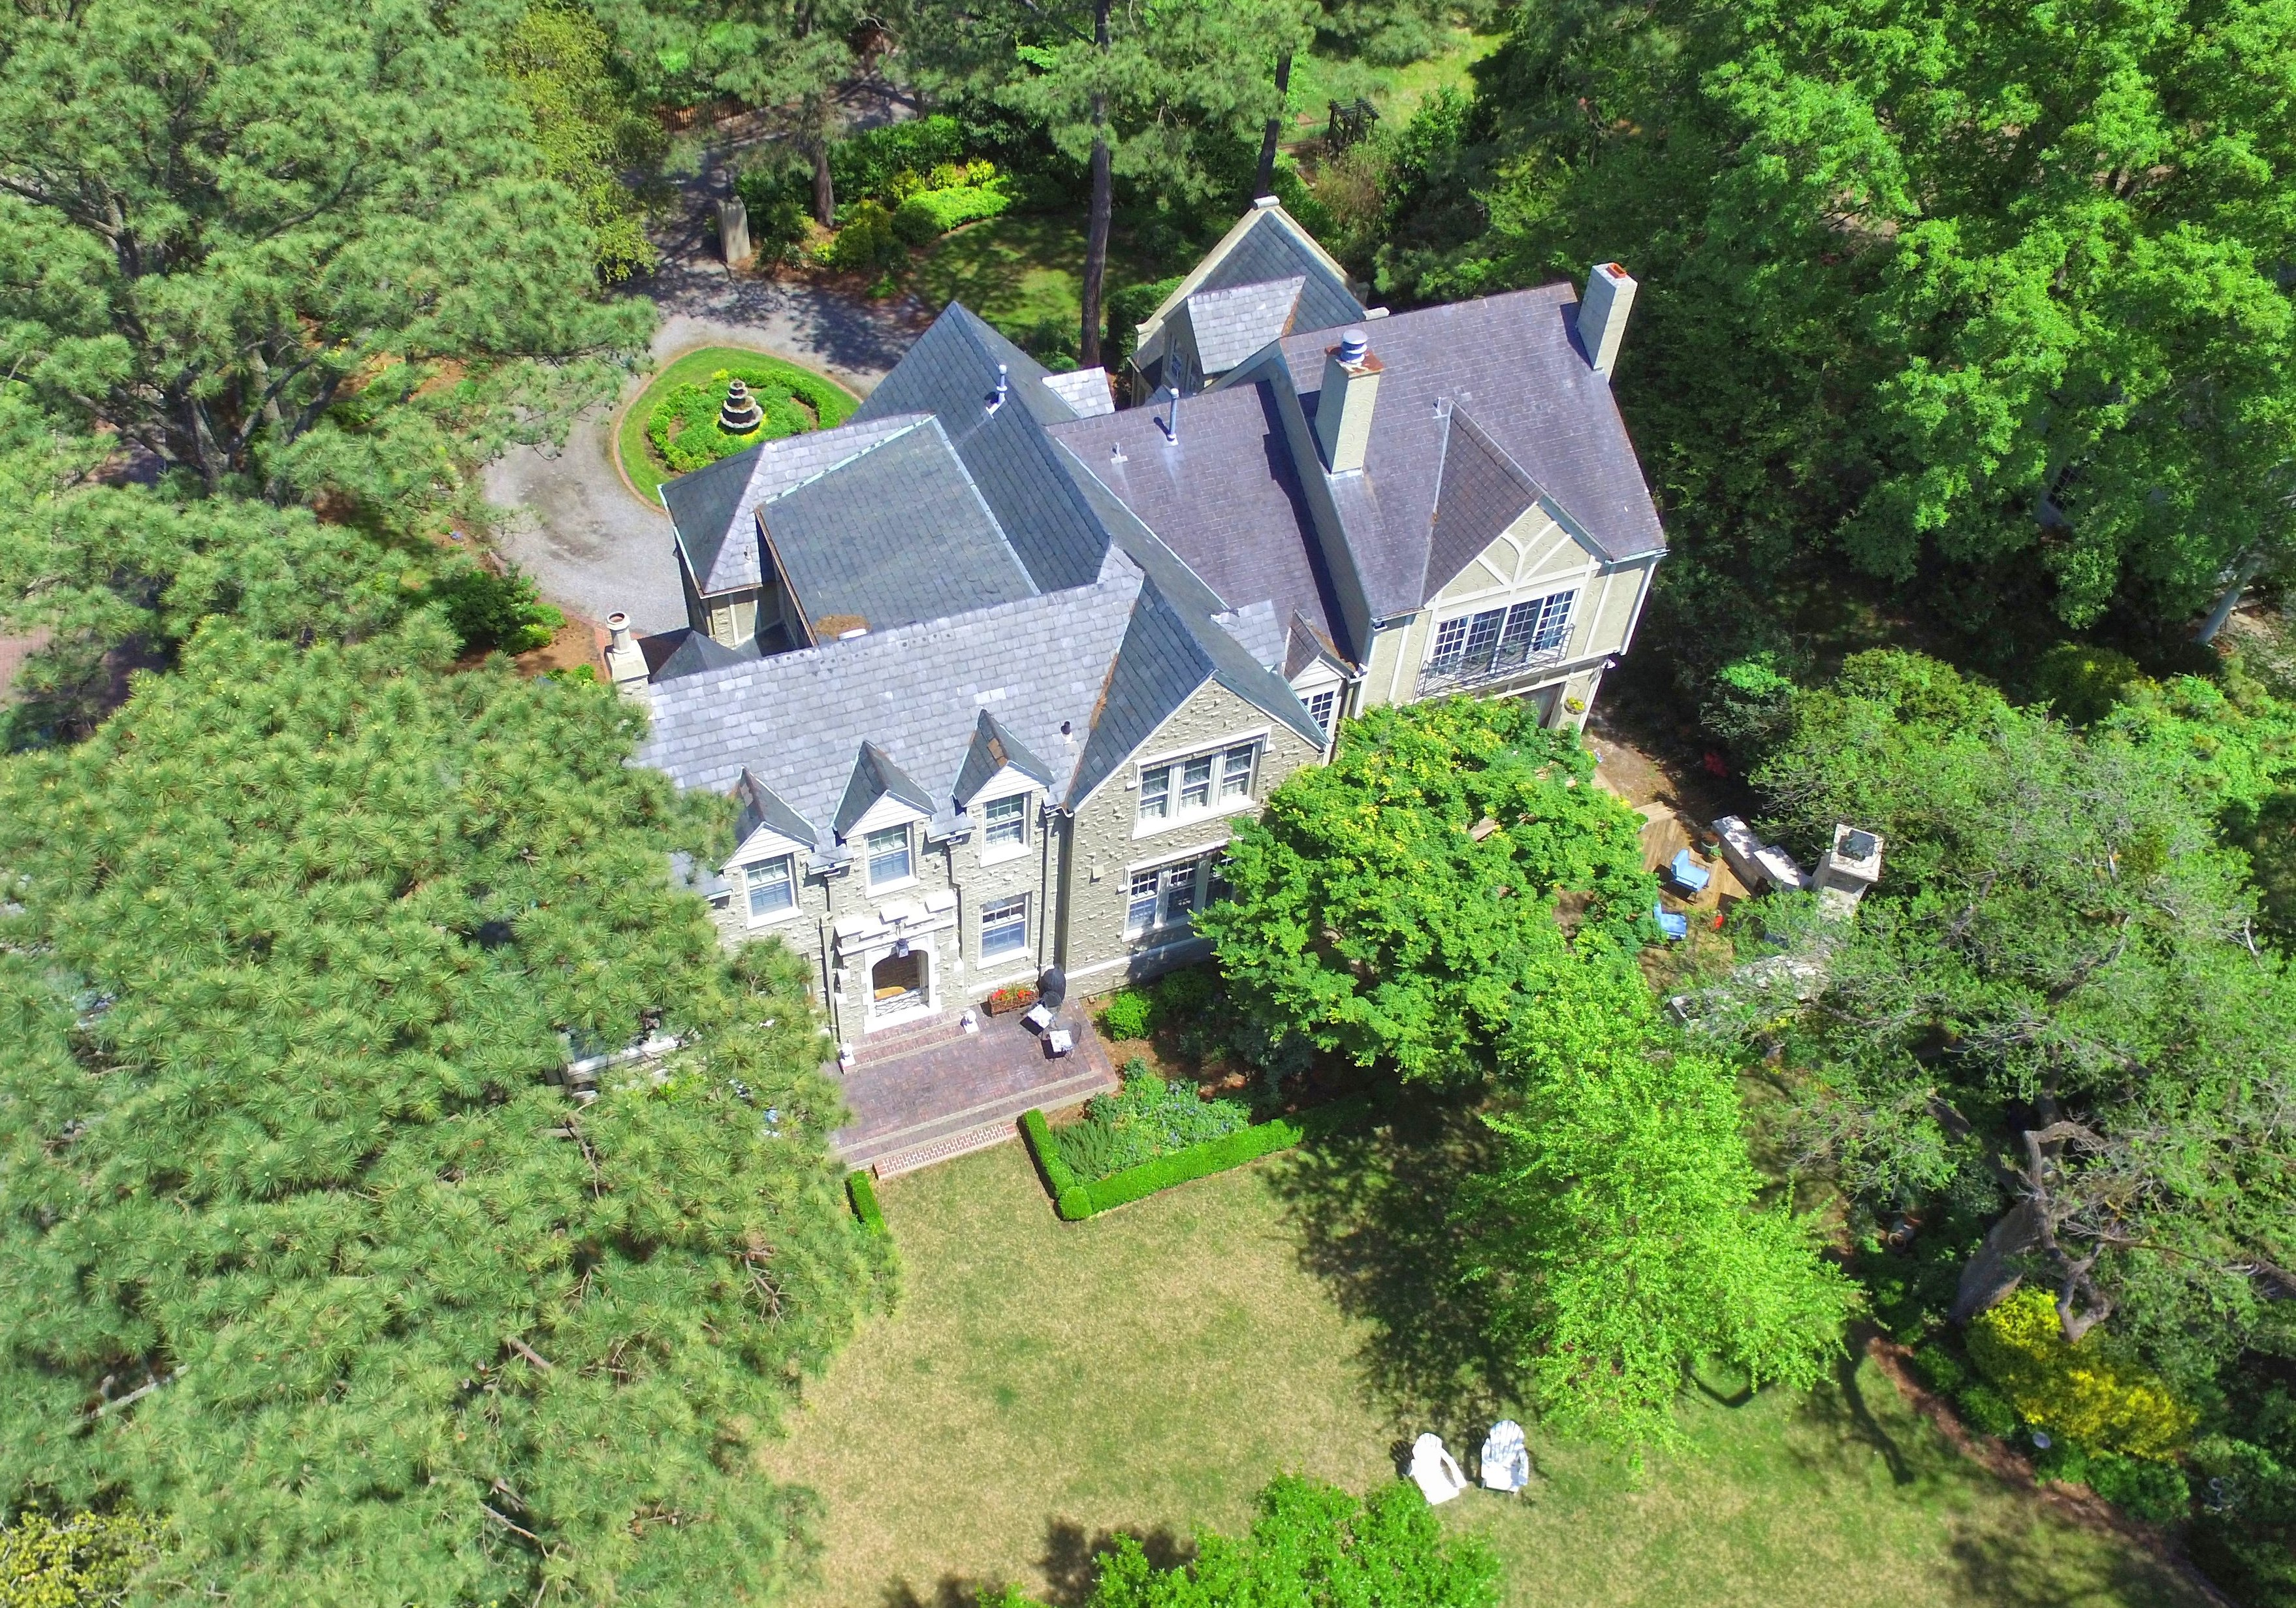 7407 Glencove Place: $1,925,000